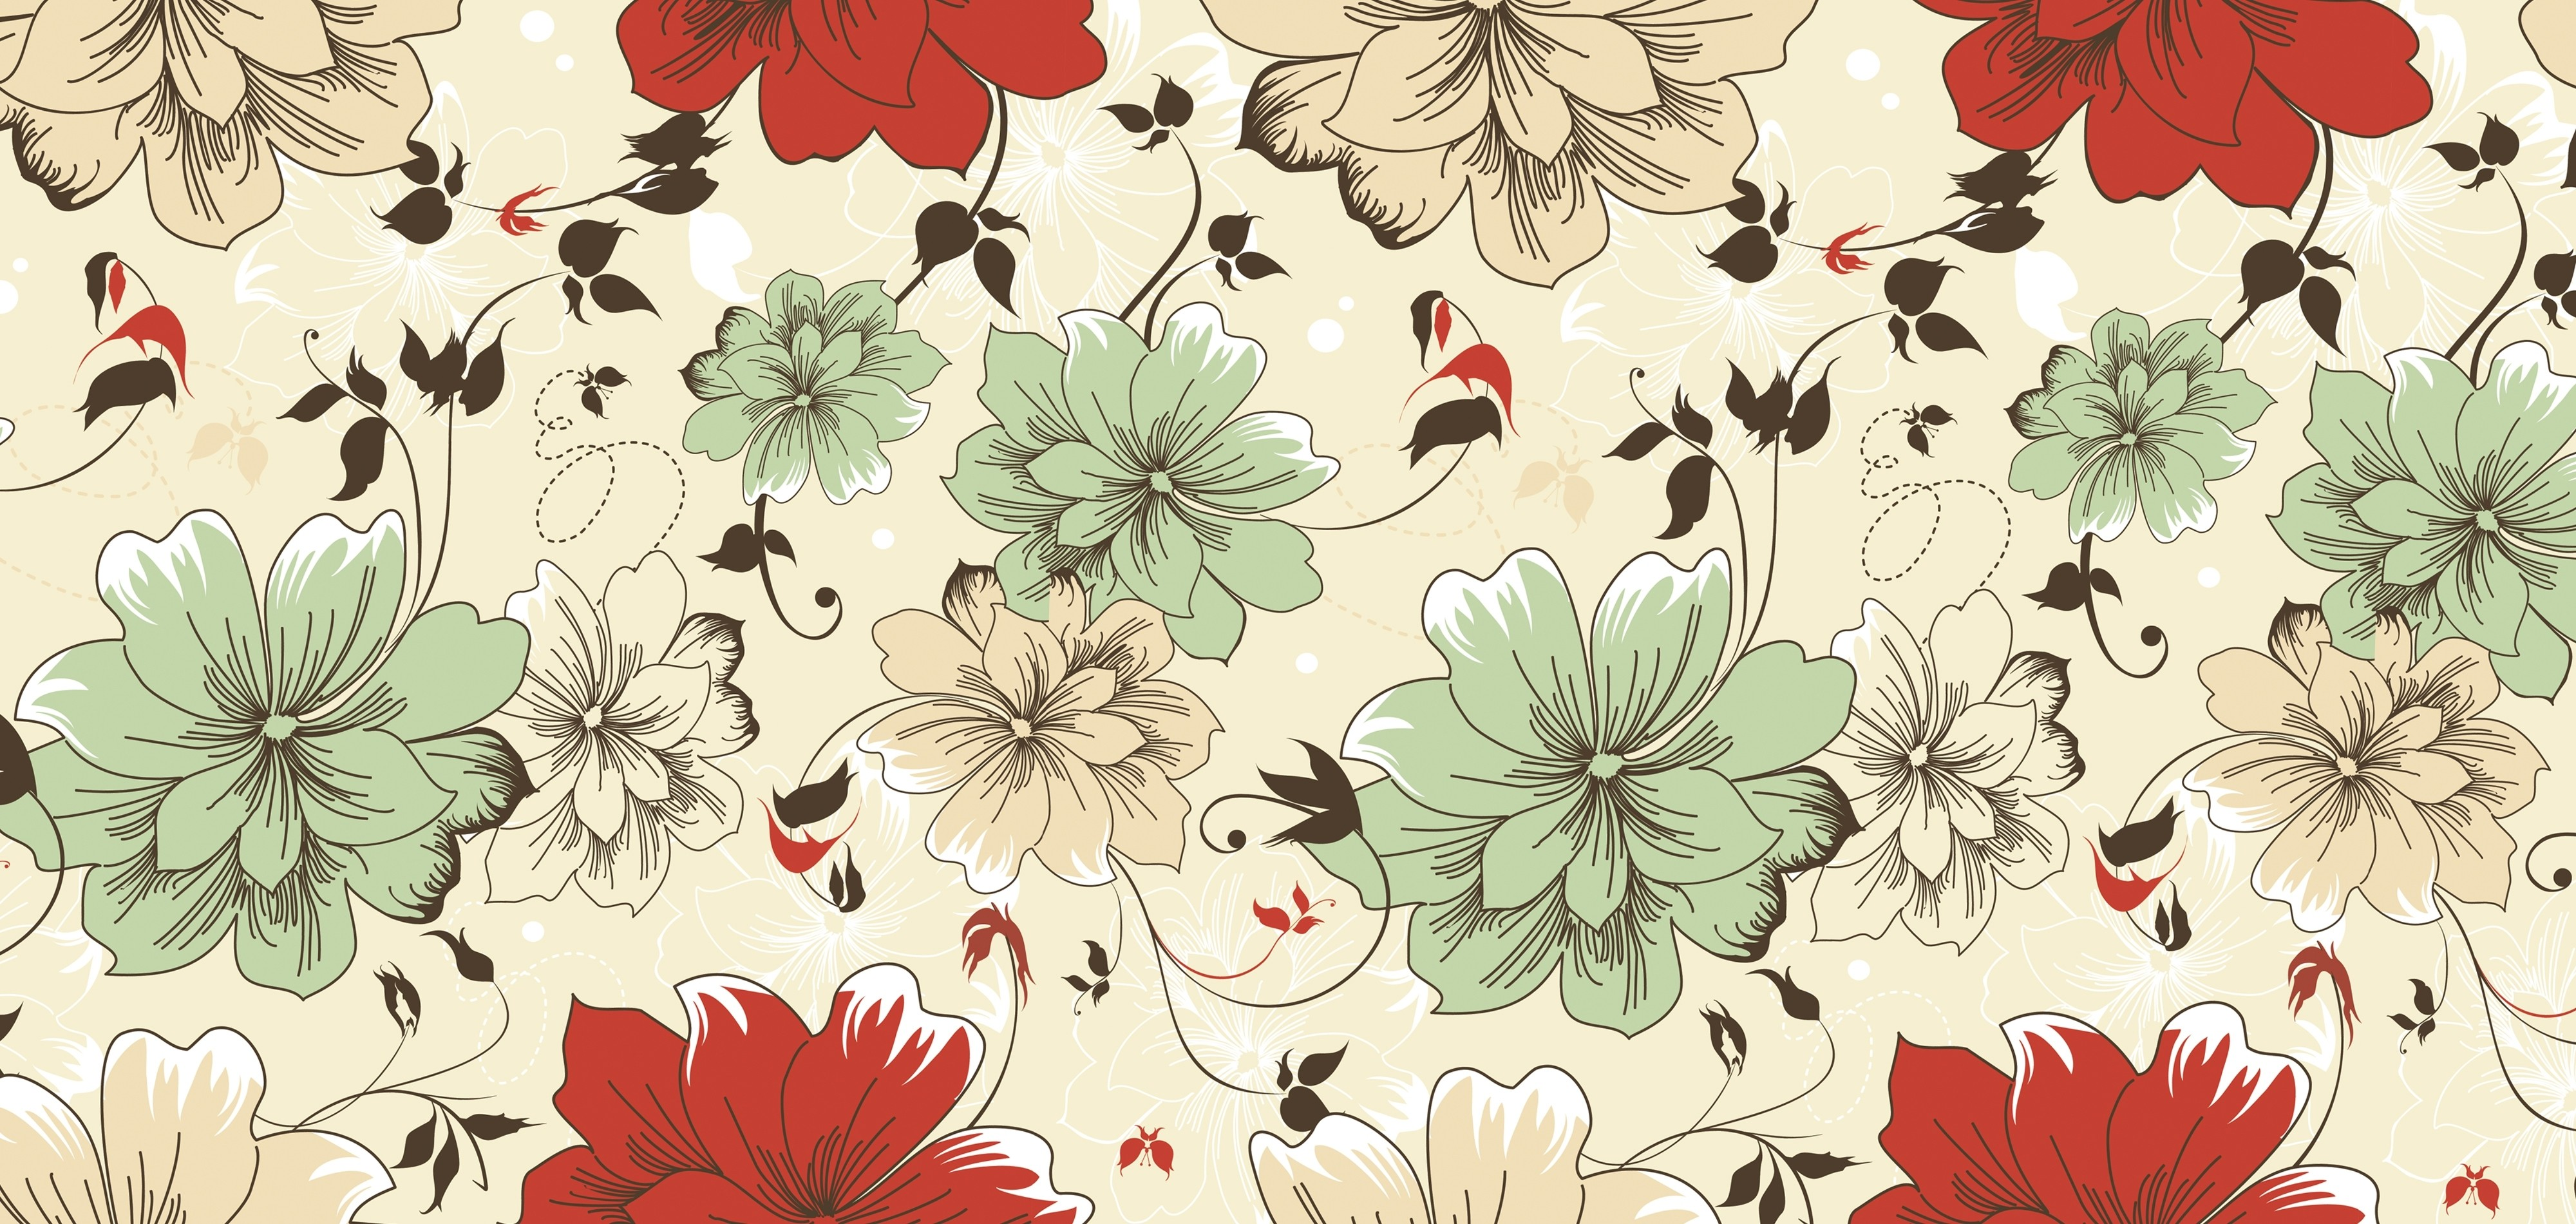 Vintage Floral Wallpaper HD For Desktop